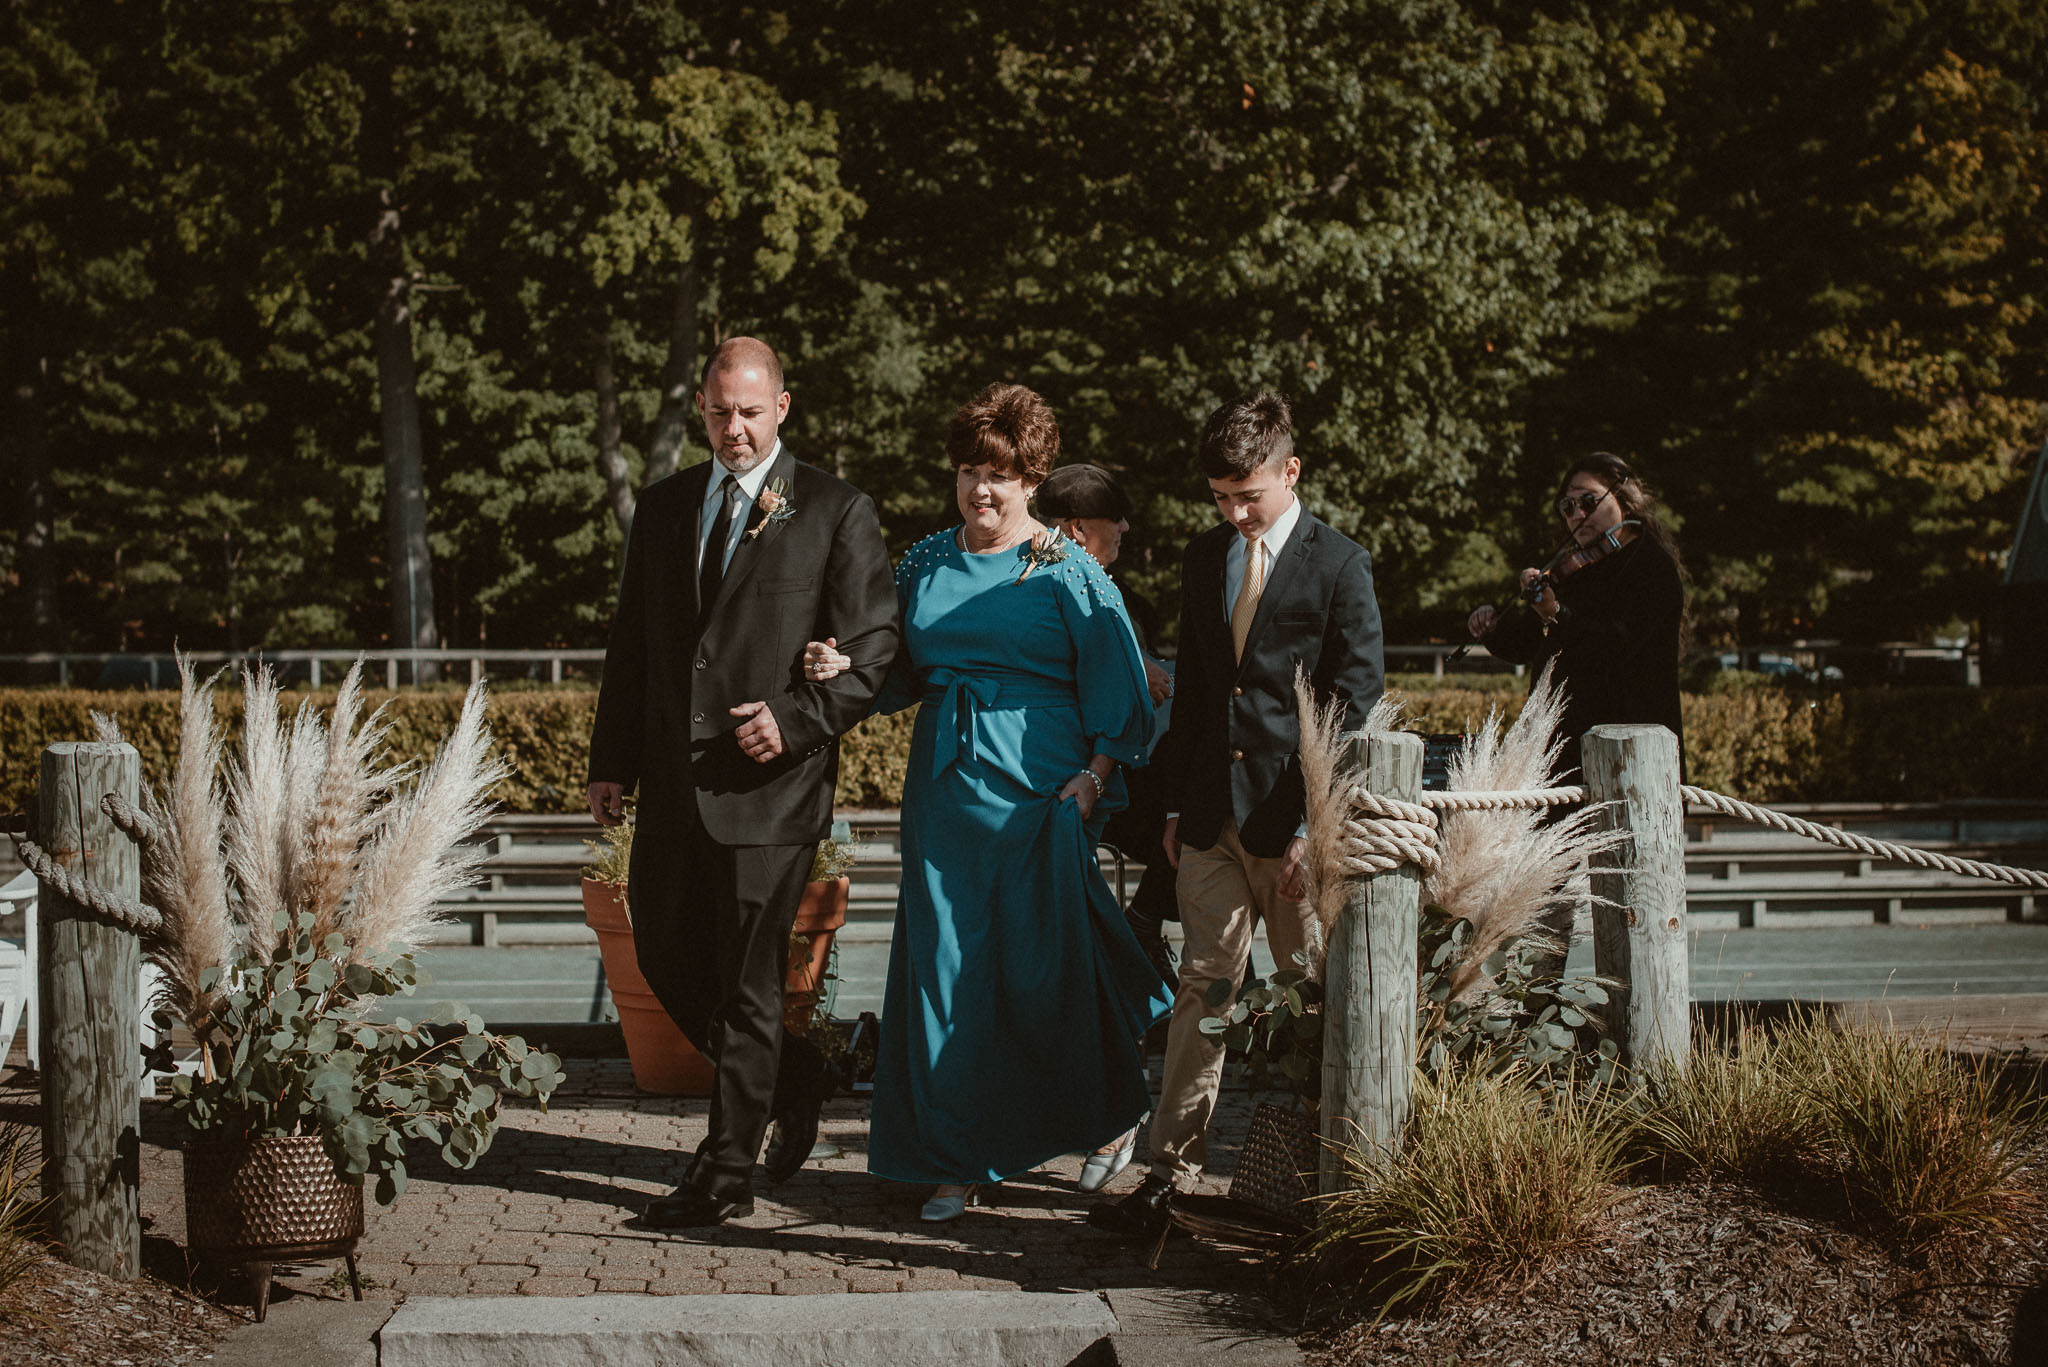 The mother of the bride being ushered to her seat by the bride's brother and his son.